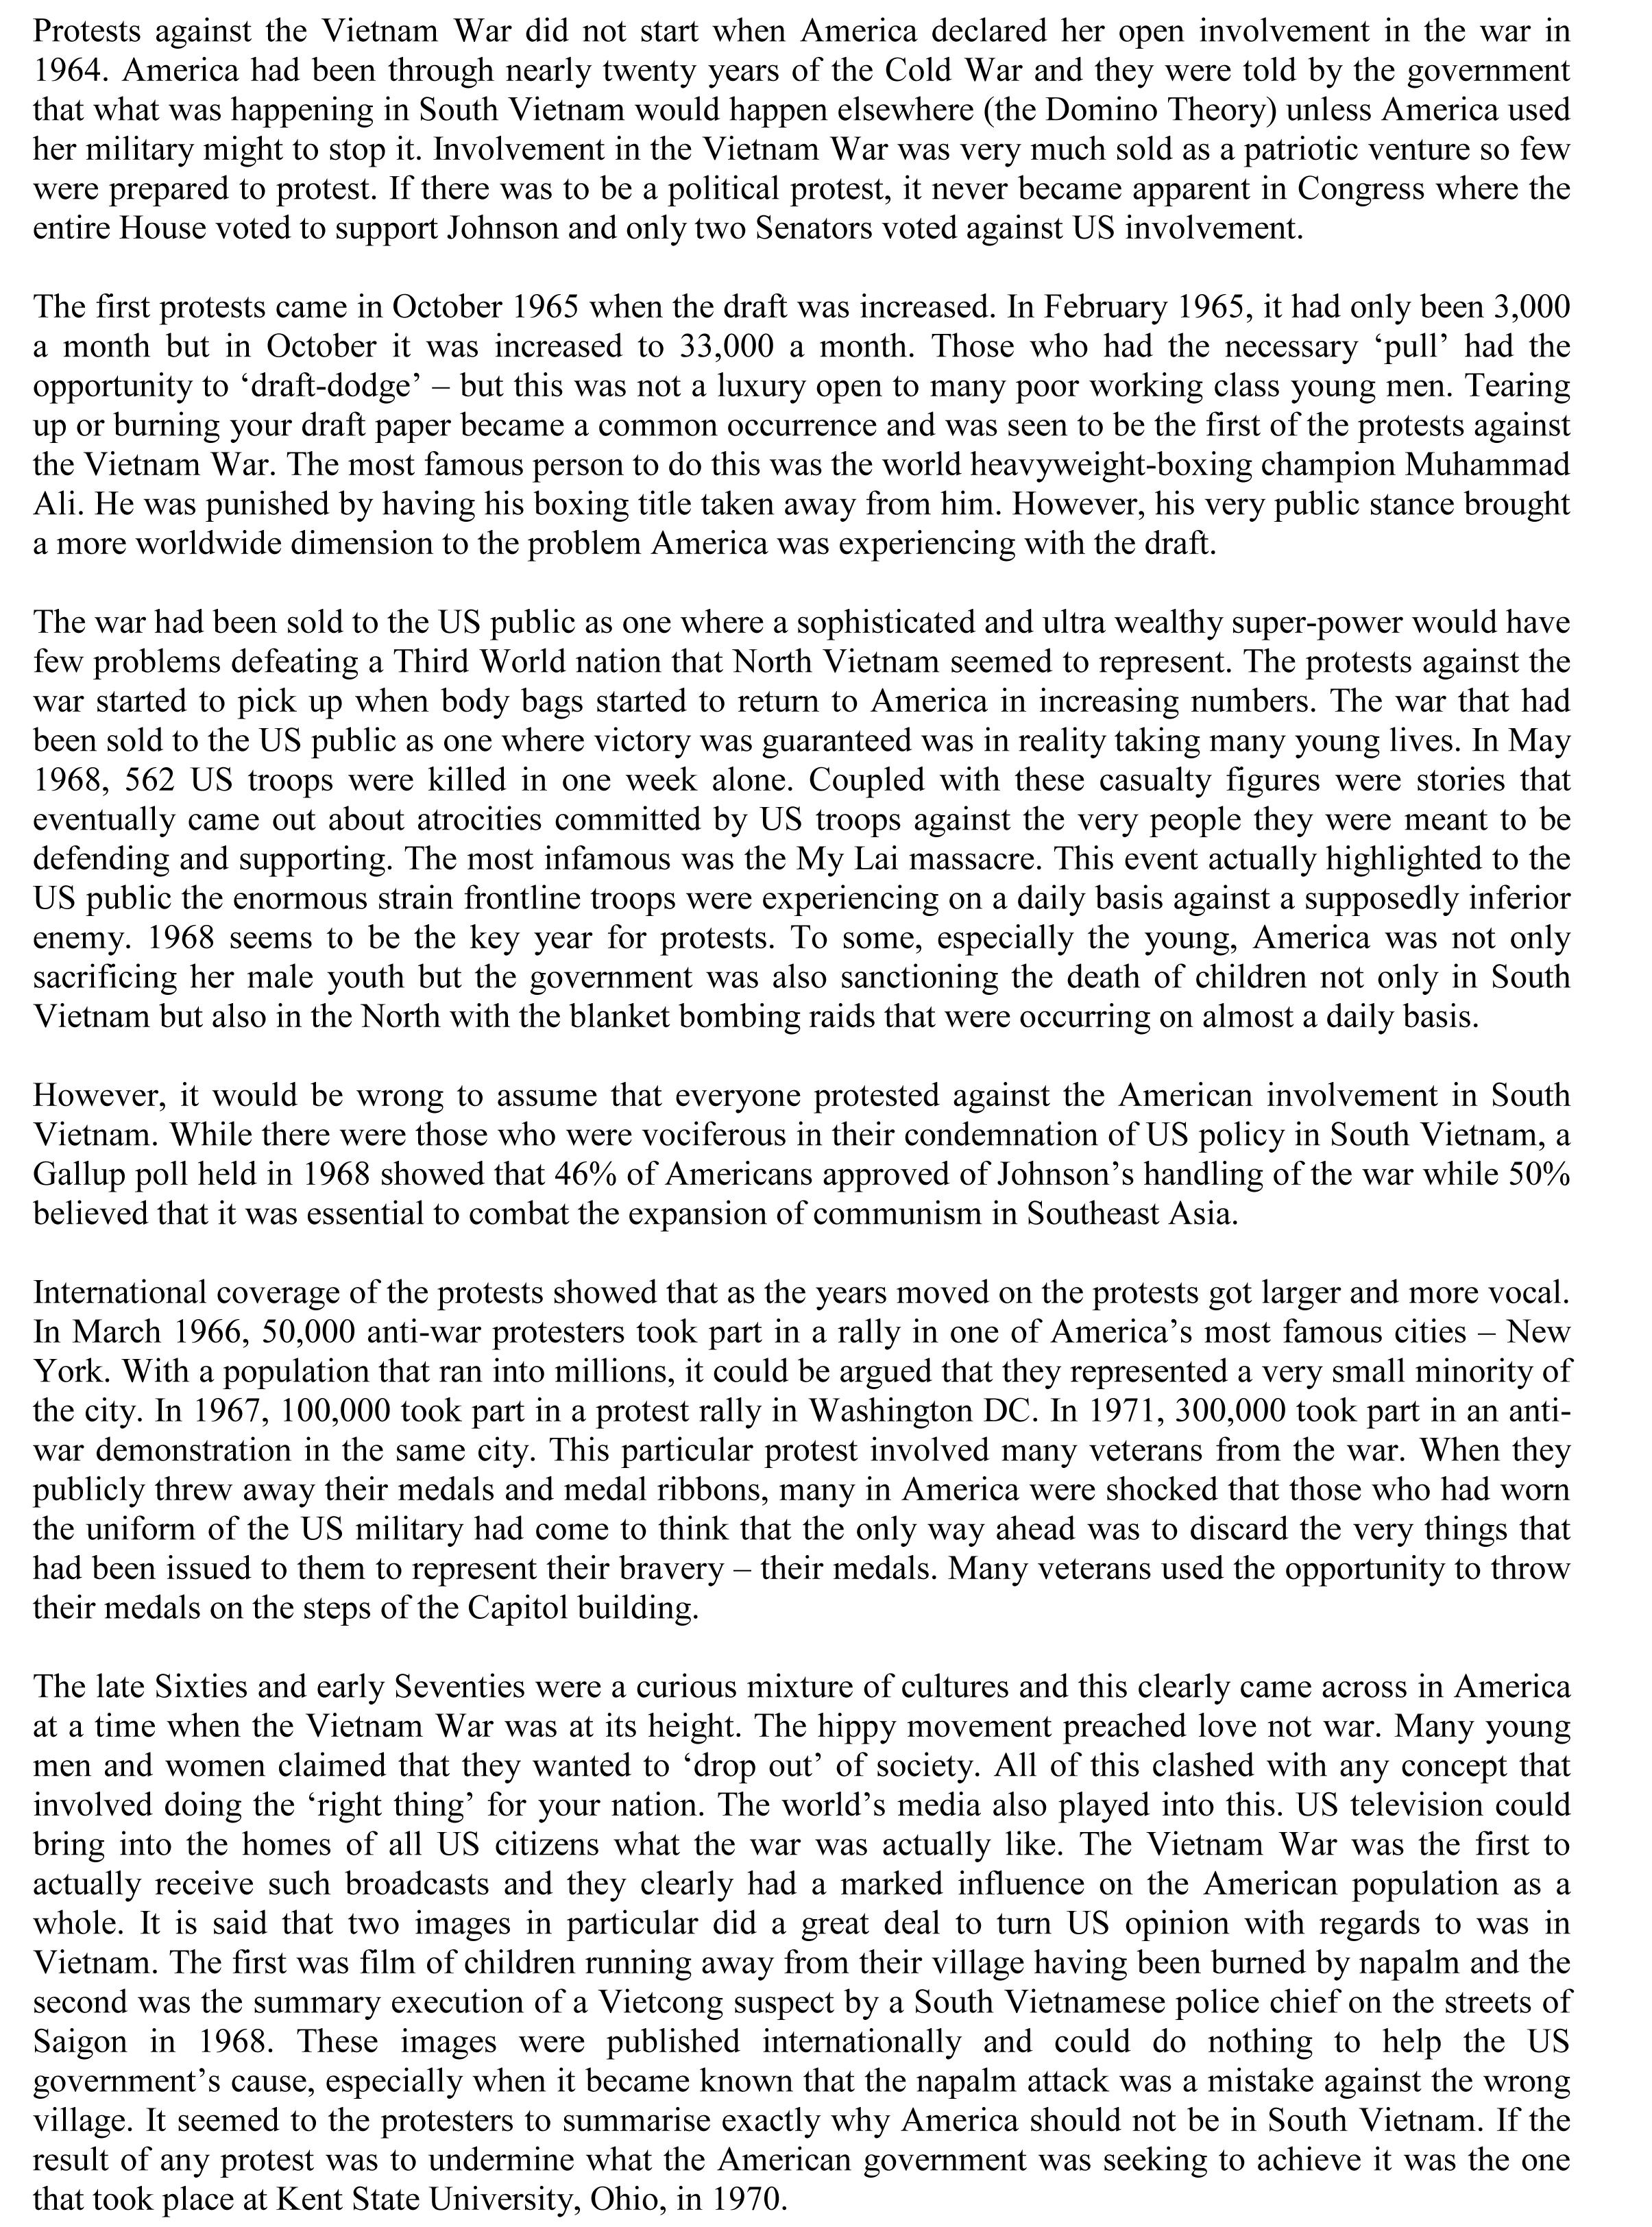 012 Vietnam War Essay Expository Cause And Effect Surprising Examples Topics Full